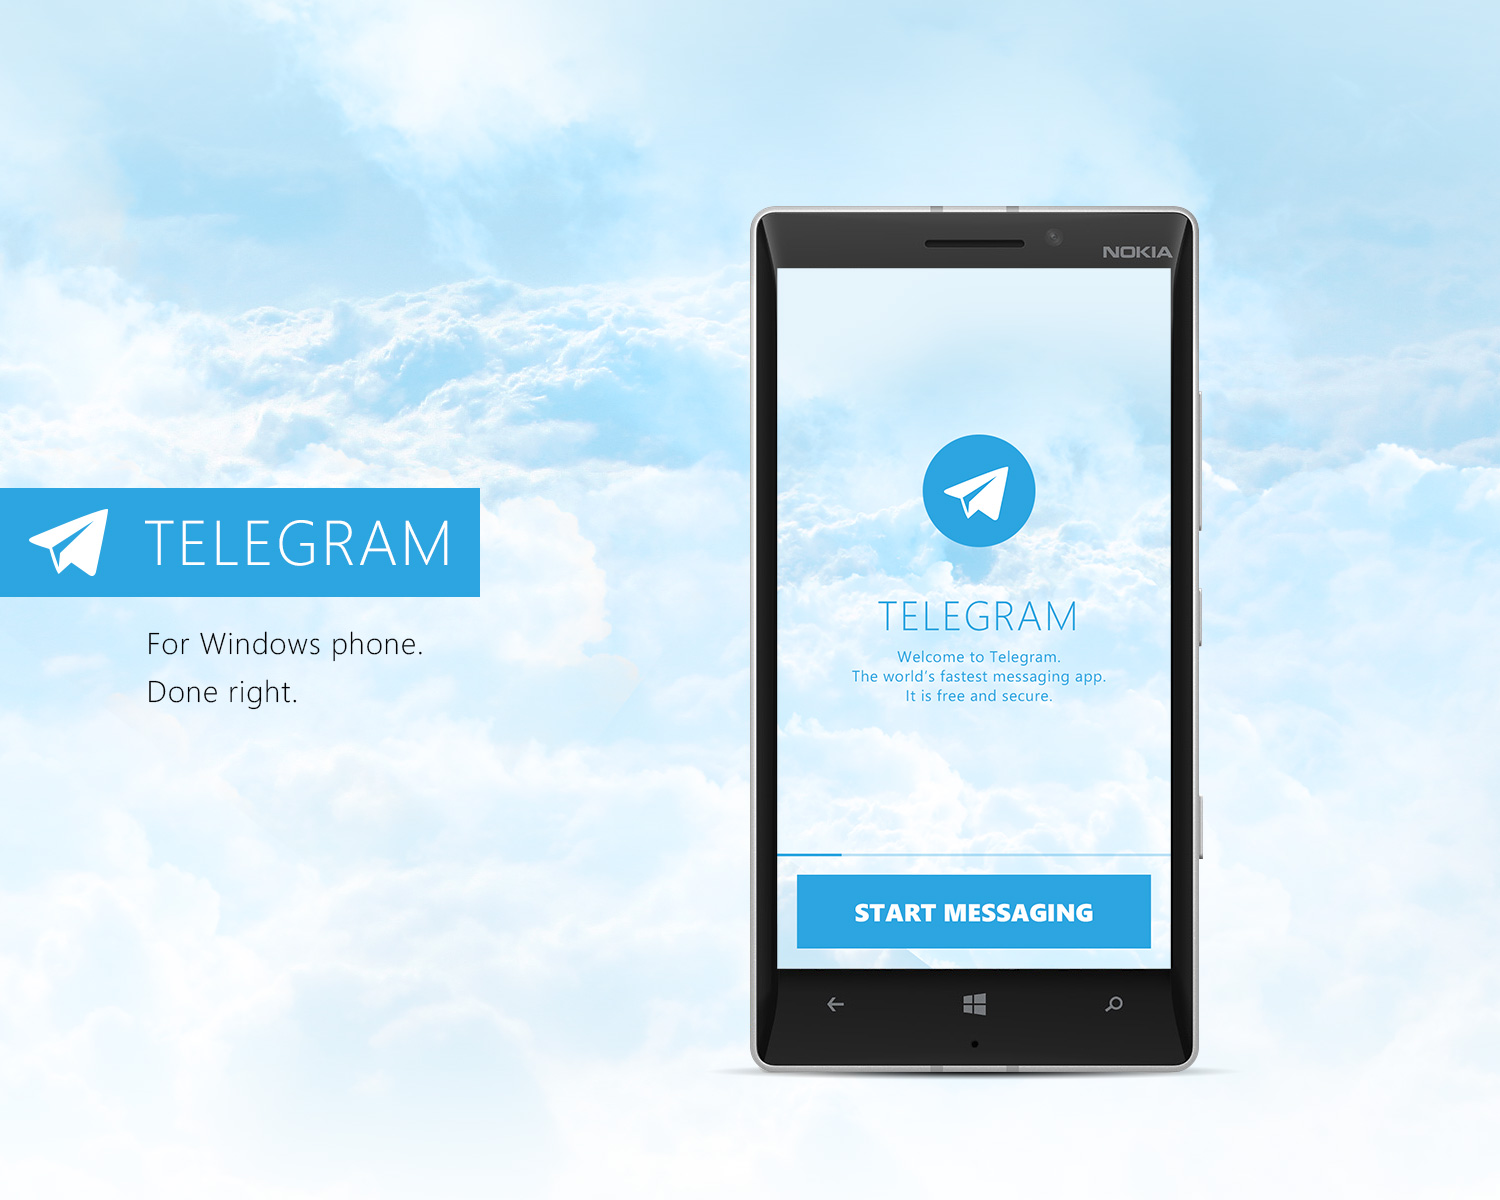 Telegram - Concept for Windows Phone